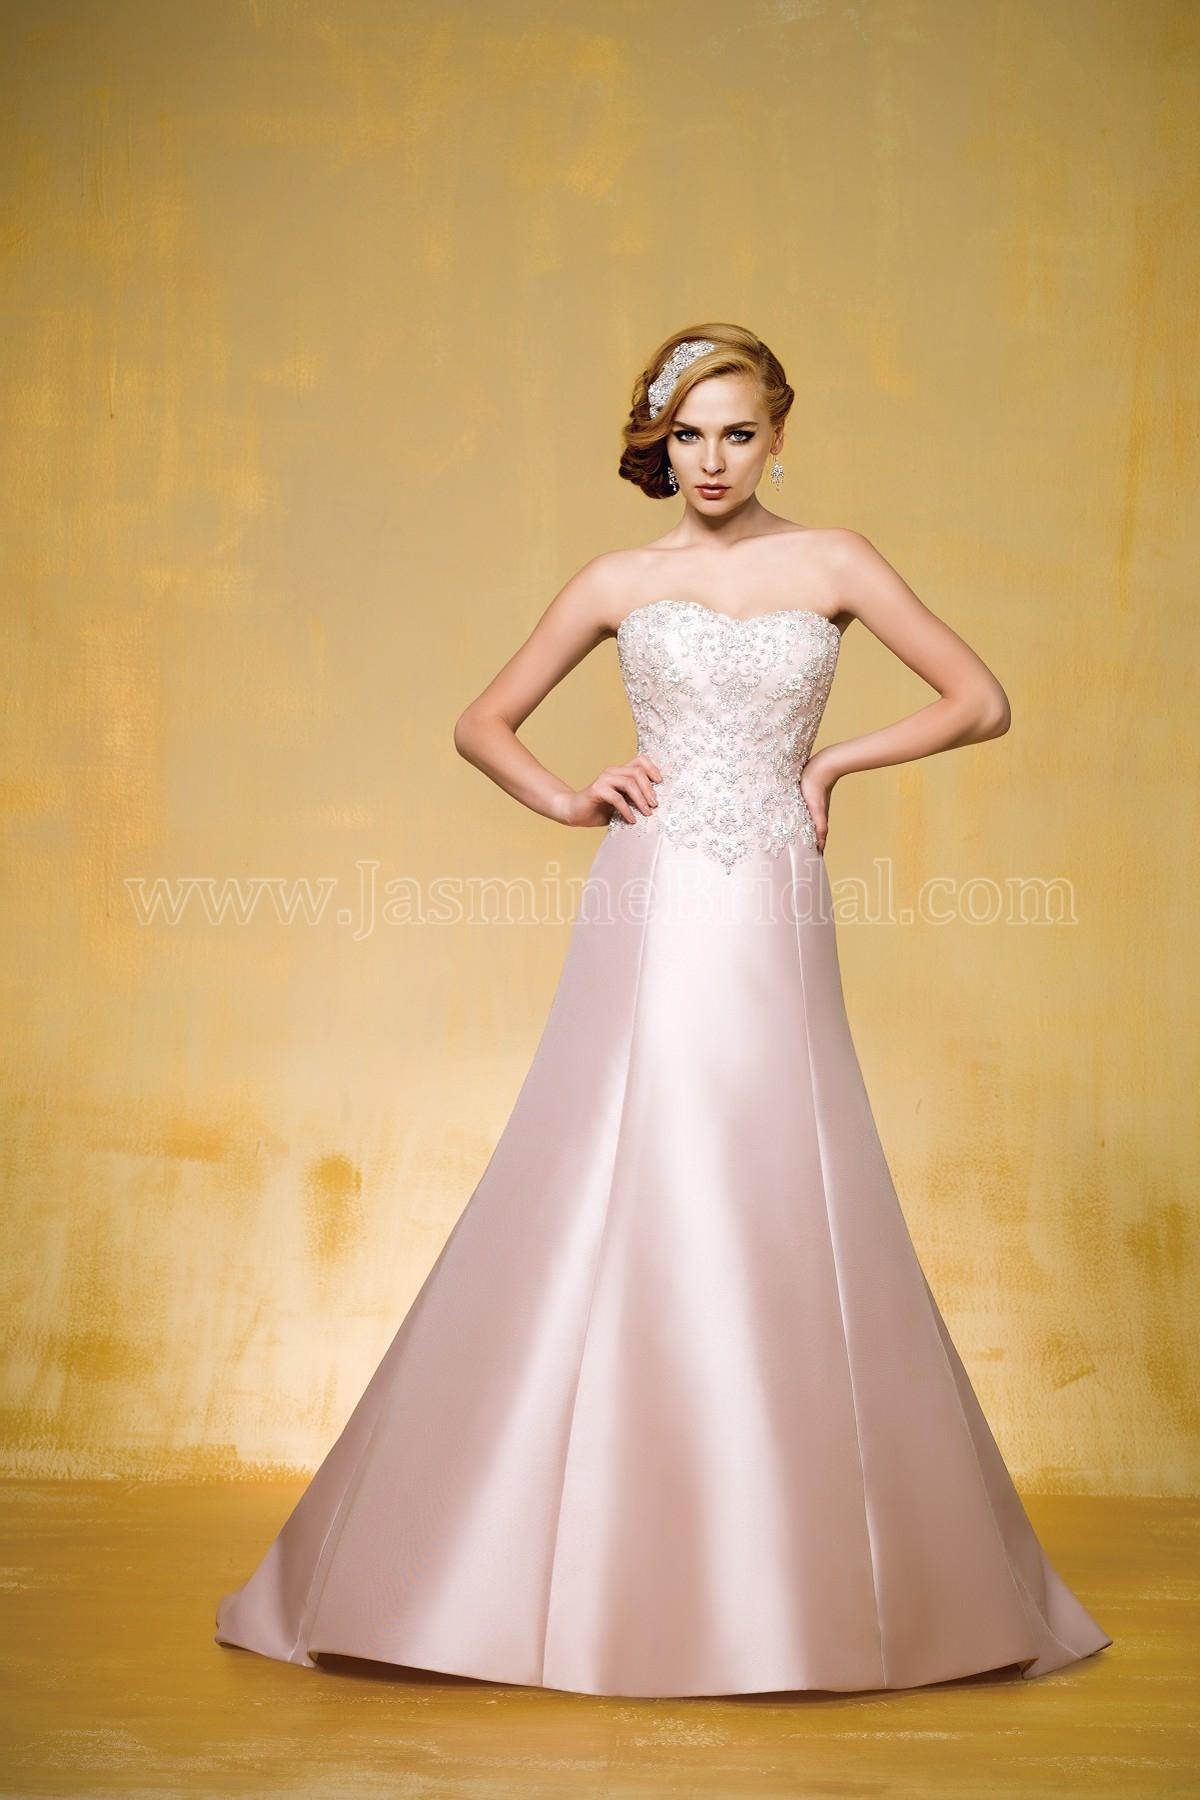 Jasmine Couture Bridal